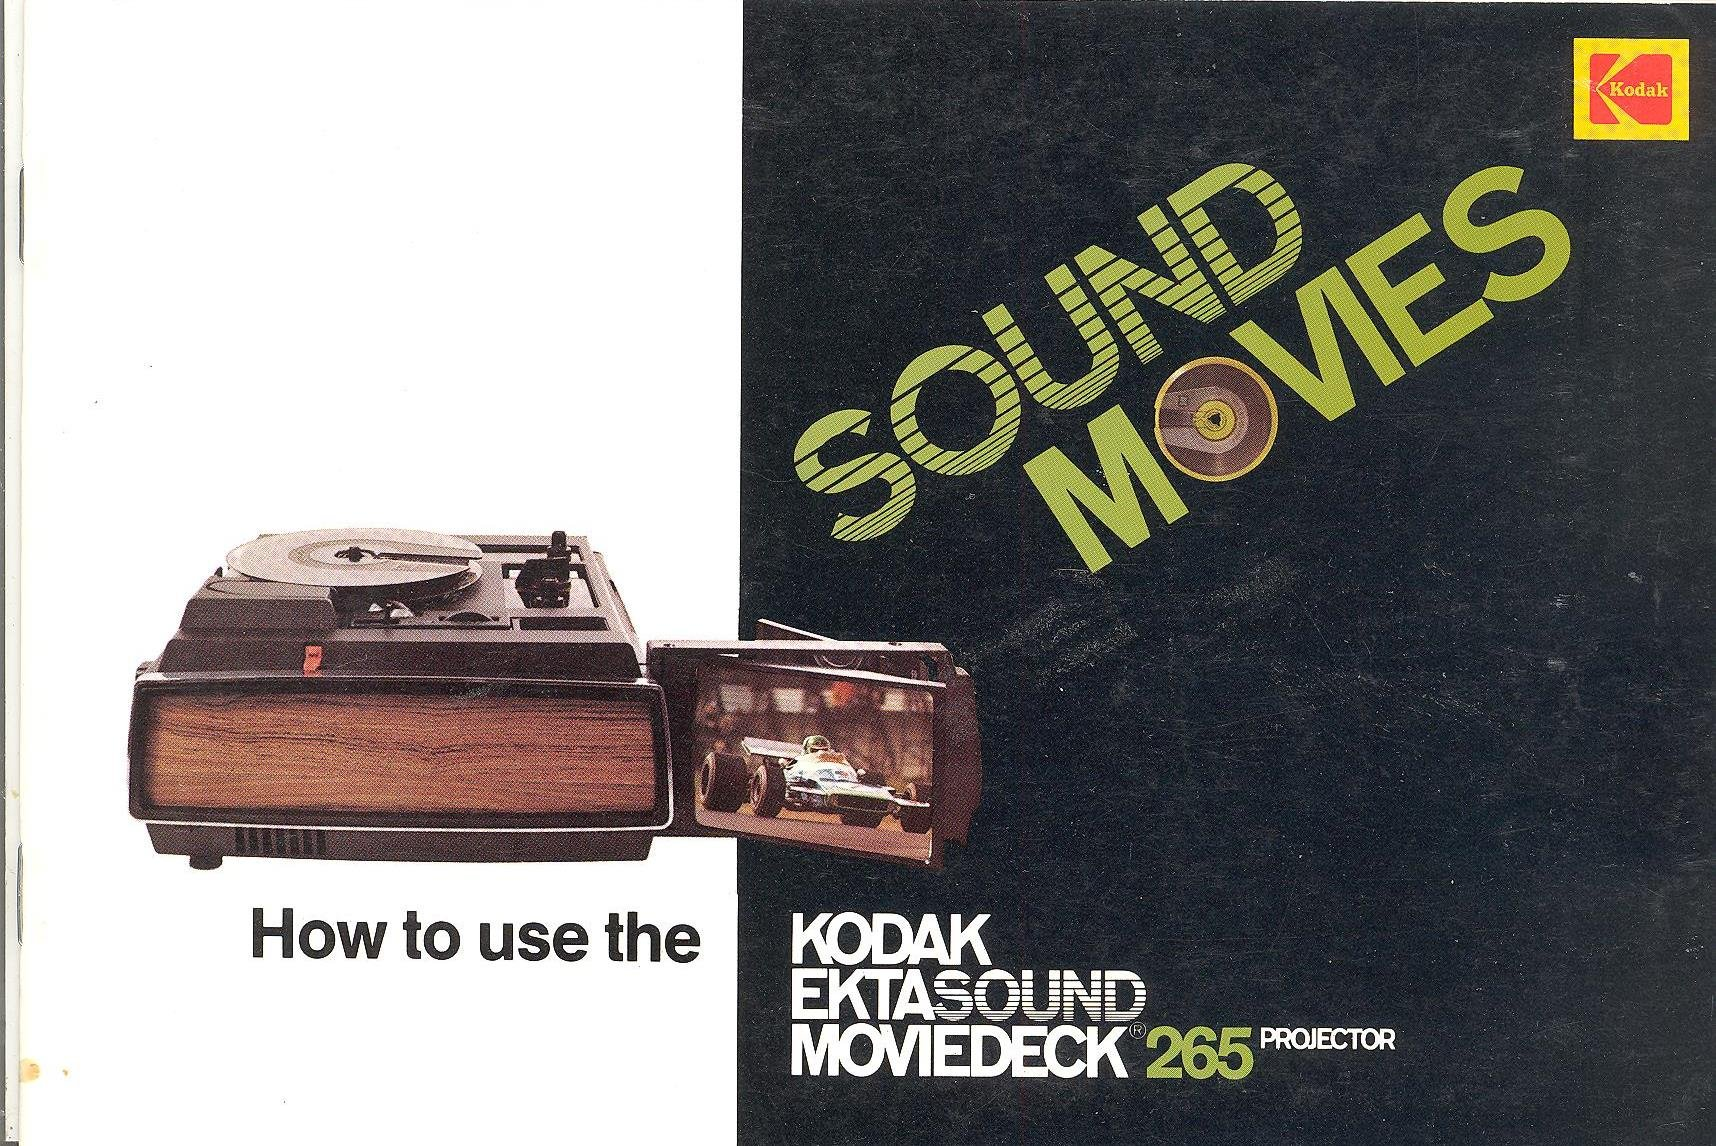 kodak ektasound moviedeck 265 porjector original instruction manual rh amazon com